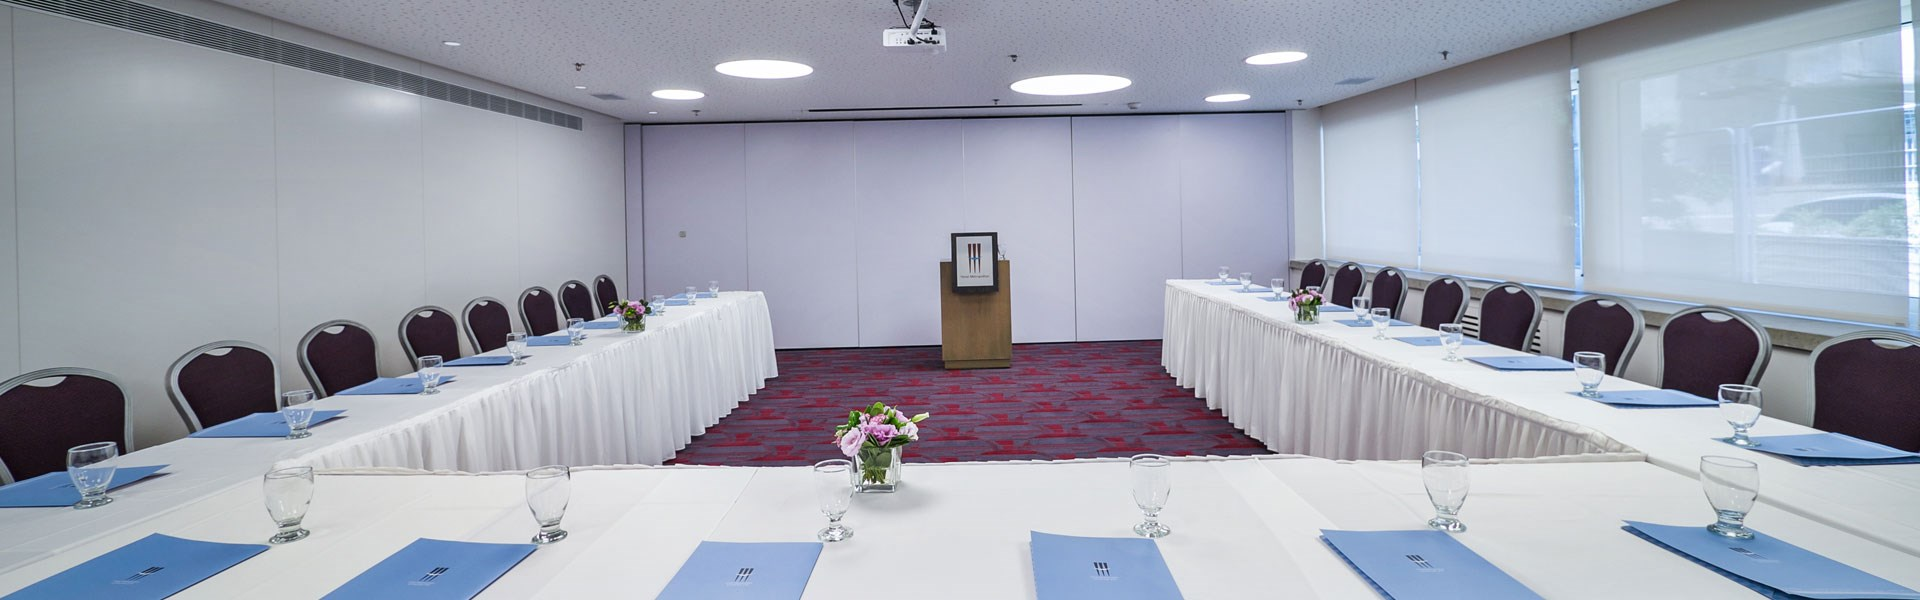 Metropolitan Hotel - Meeting room